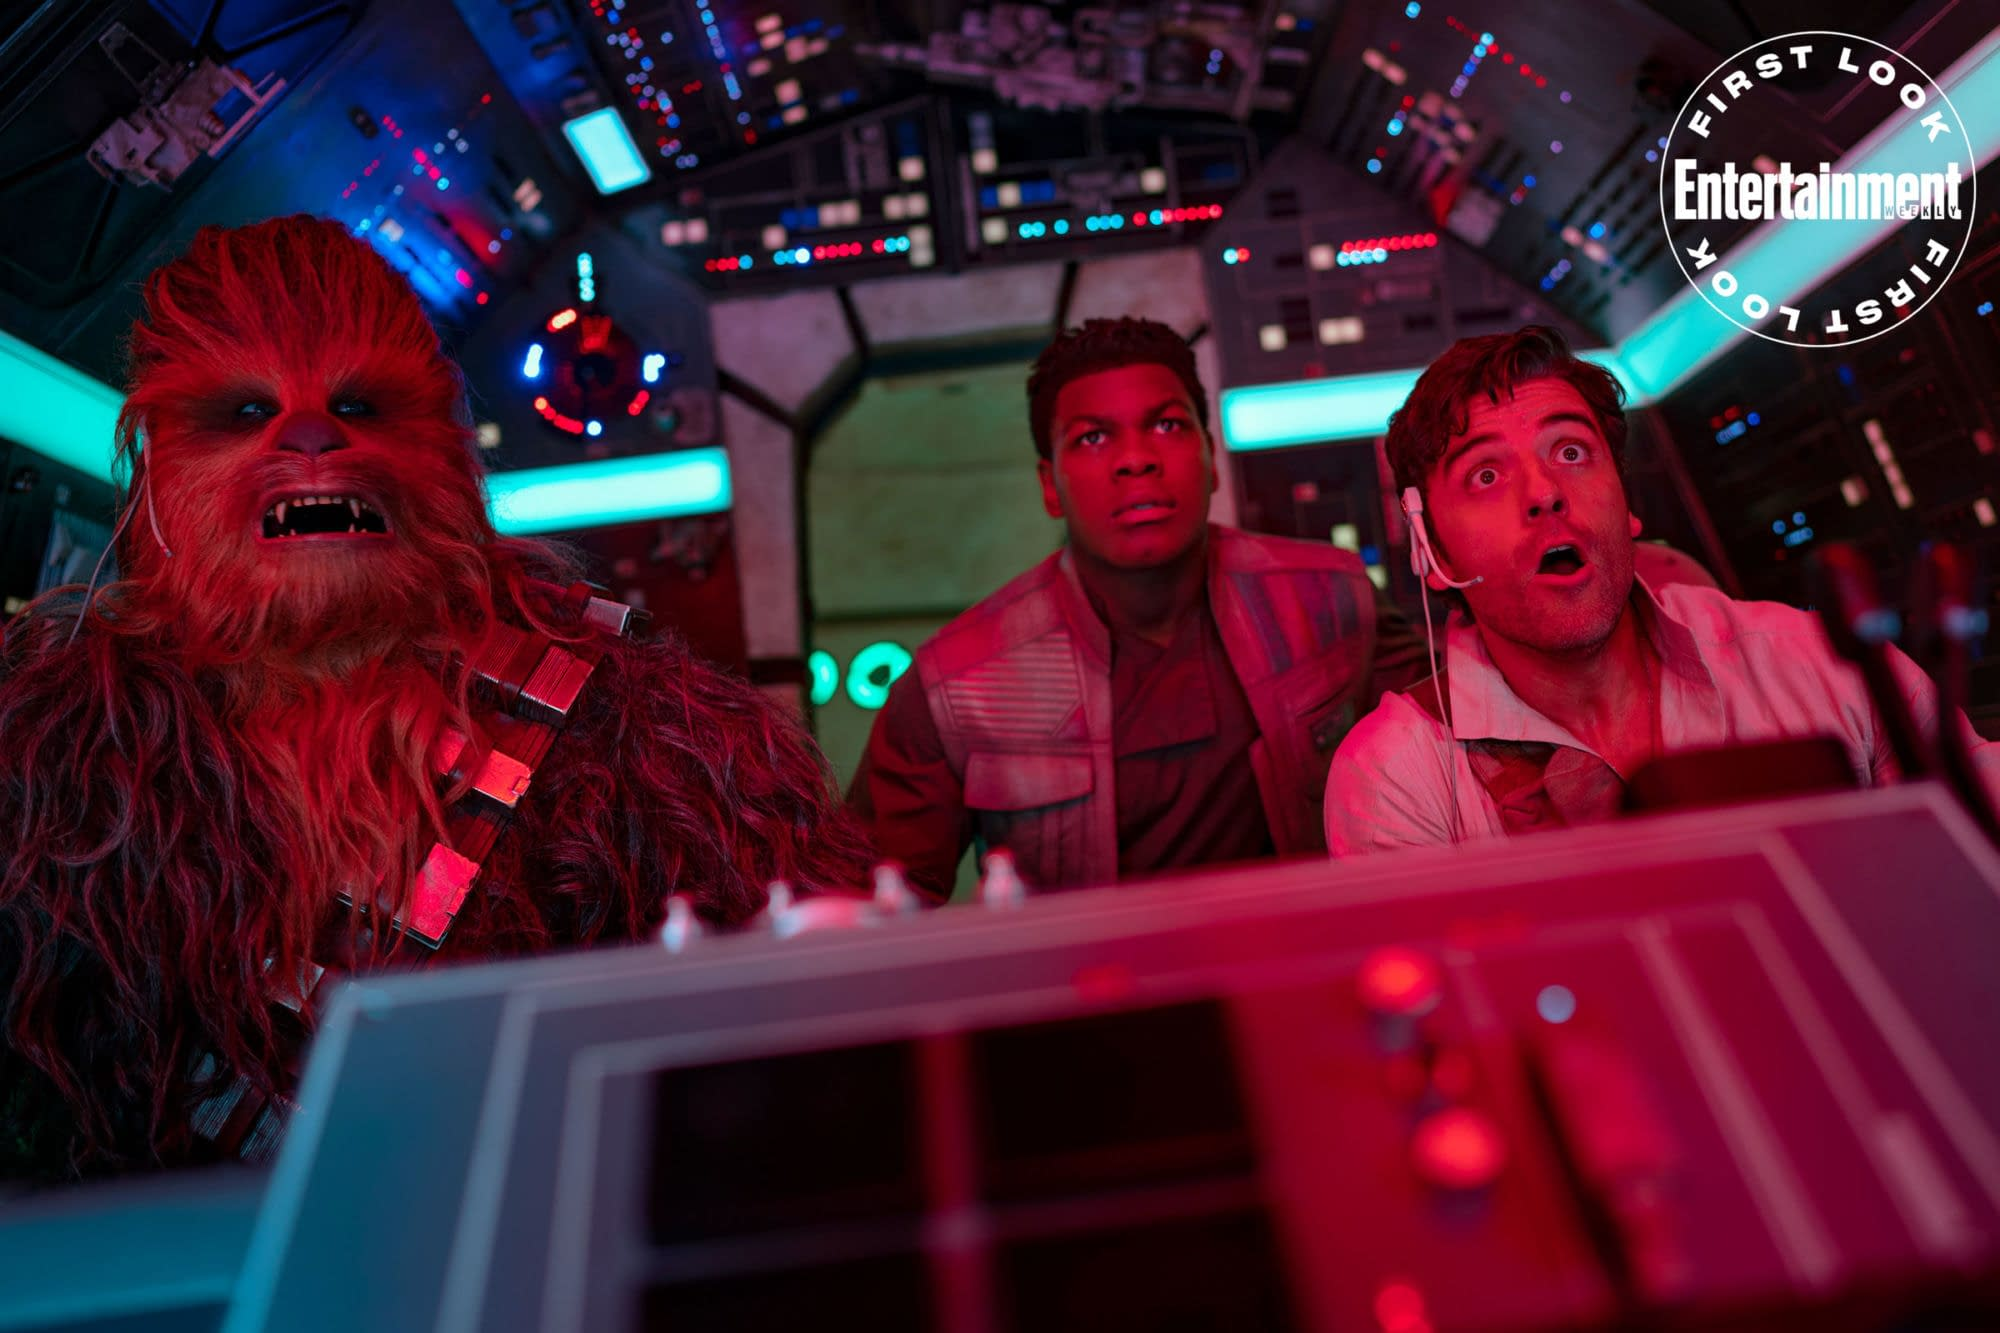 """Star Wars"": New Image of Finn, Poe, and Chewie from ""The Rise of Skywalker"""